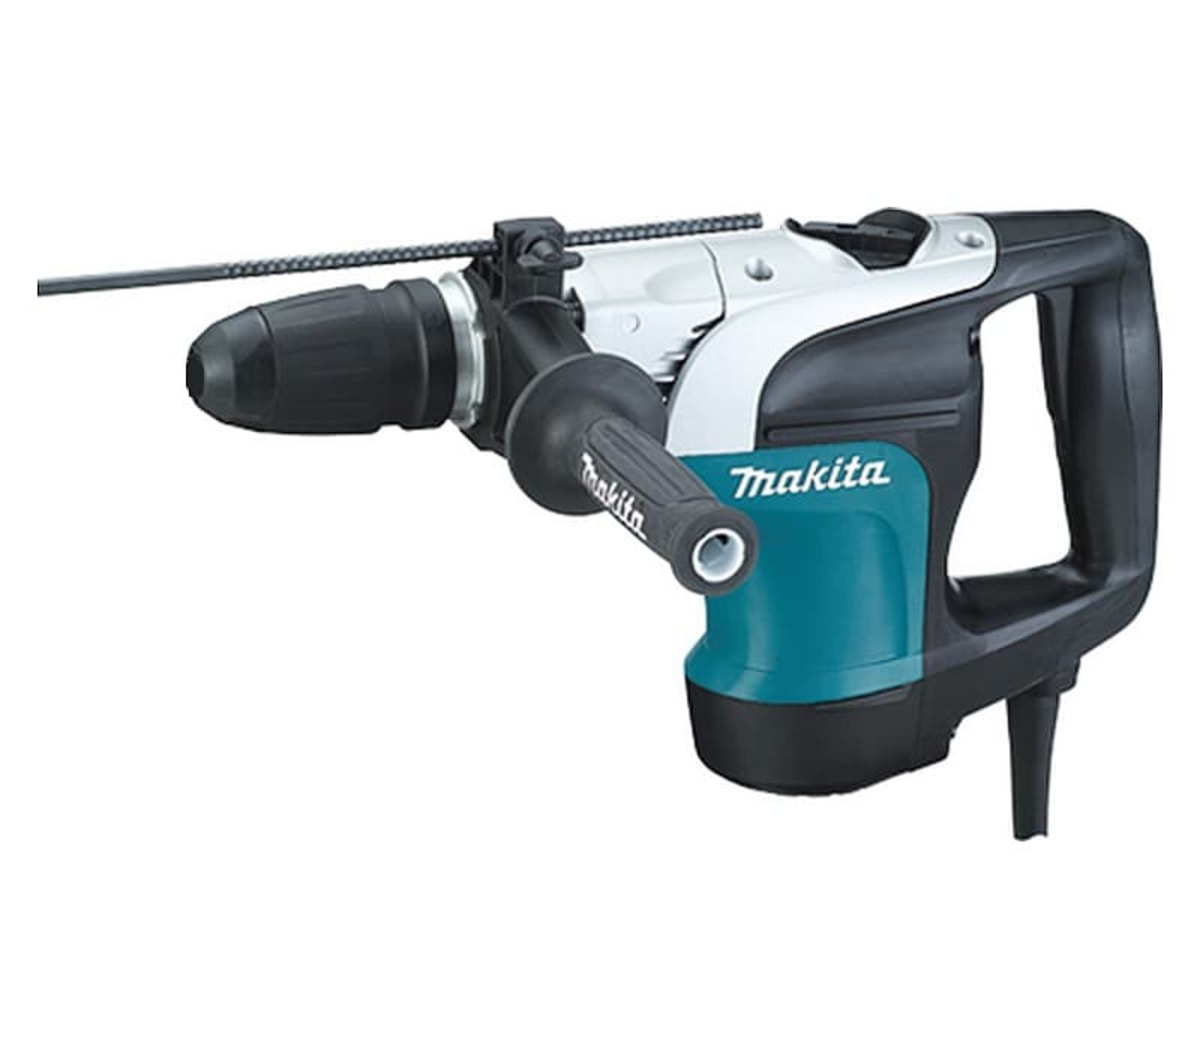 Kladivo SDS Max, 1050 W Makita HR4002